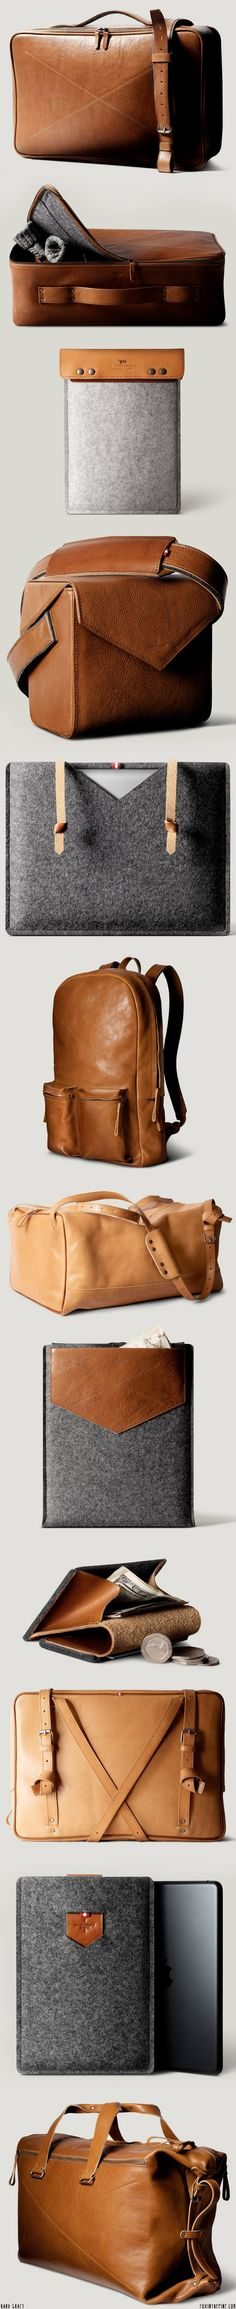 Beautiful, classy bags and accessories... the complete set would be a dream gift for the trendy traveler! (Borse Varie)